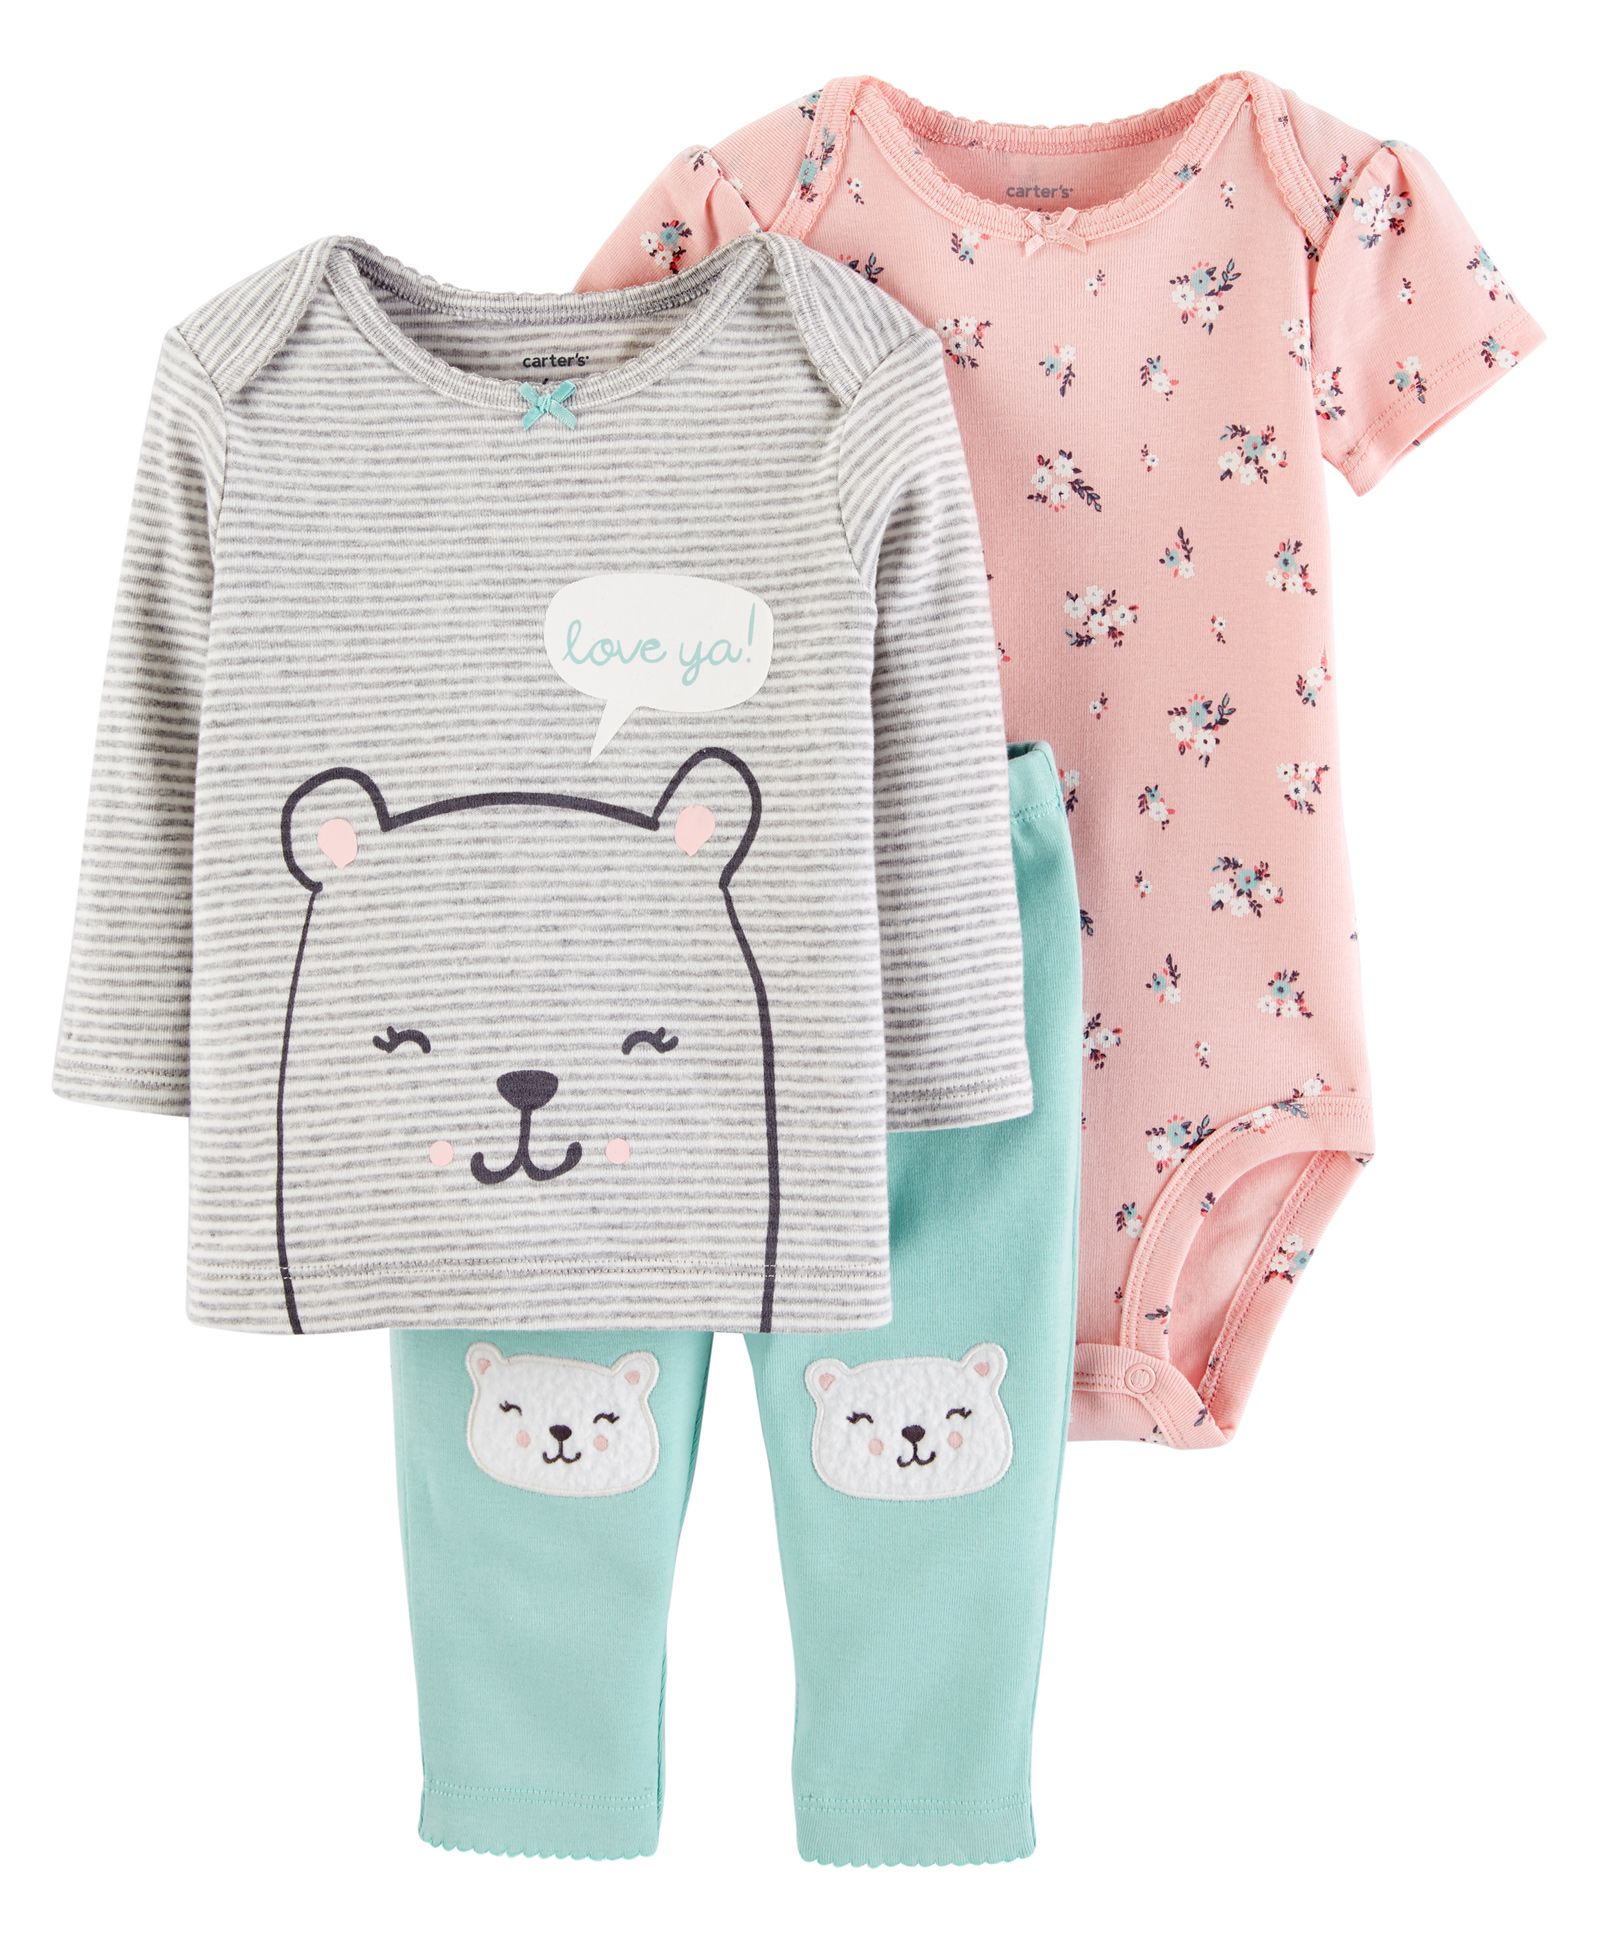 321b2fa6bbb Buy Carters 3Piece Little Character Set Pink Sea Green for Girls (3-6 ...